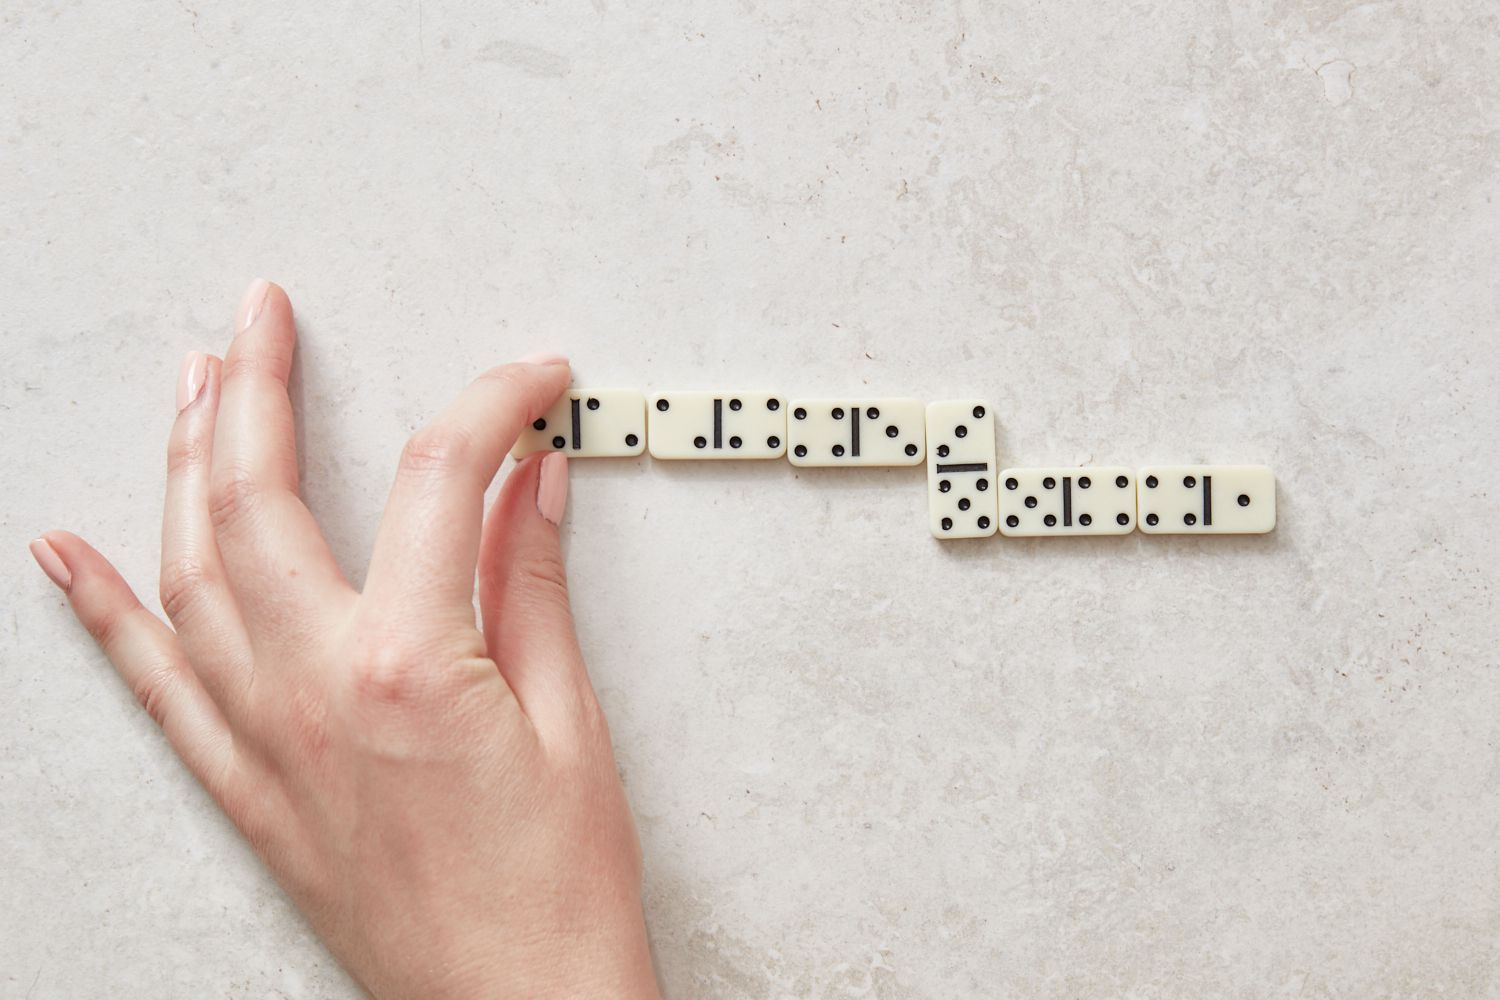 lining up dominoes